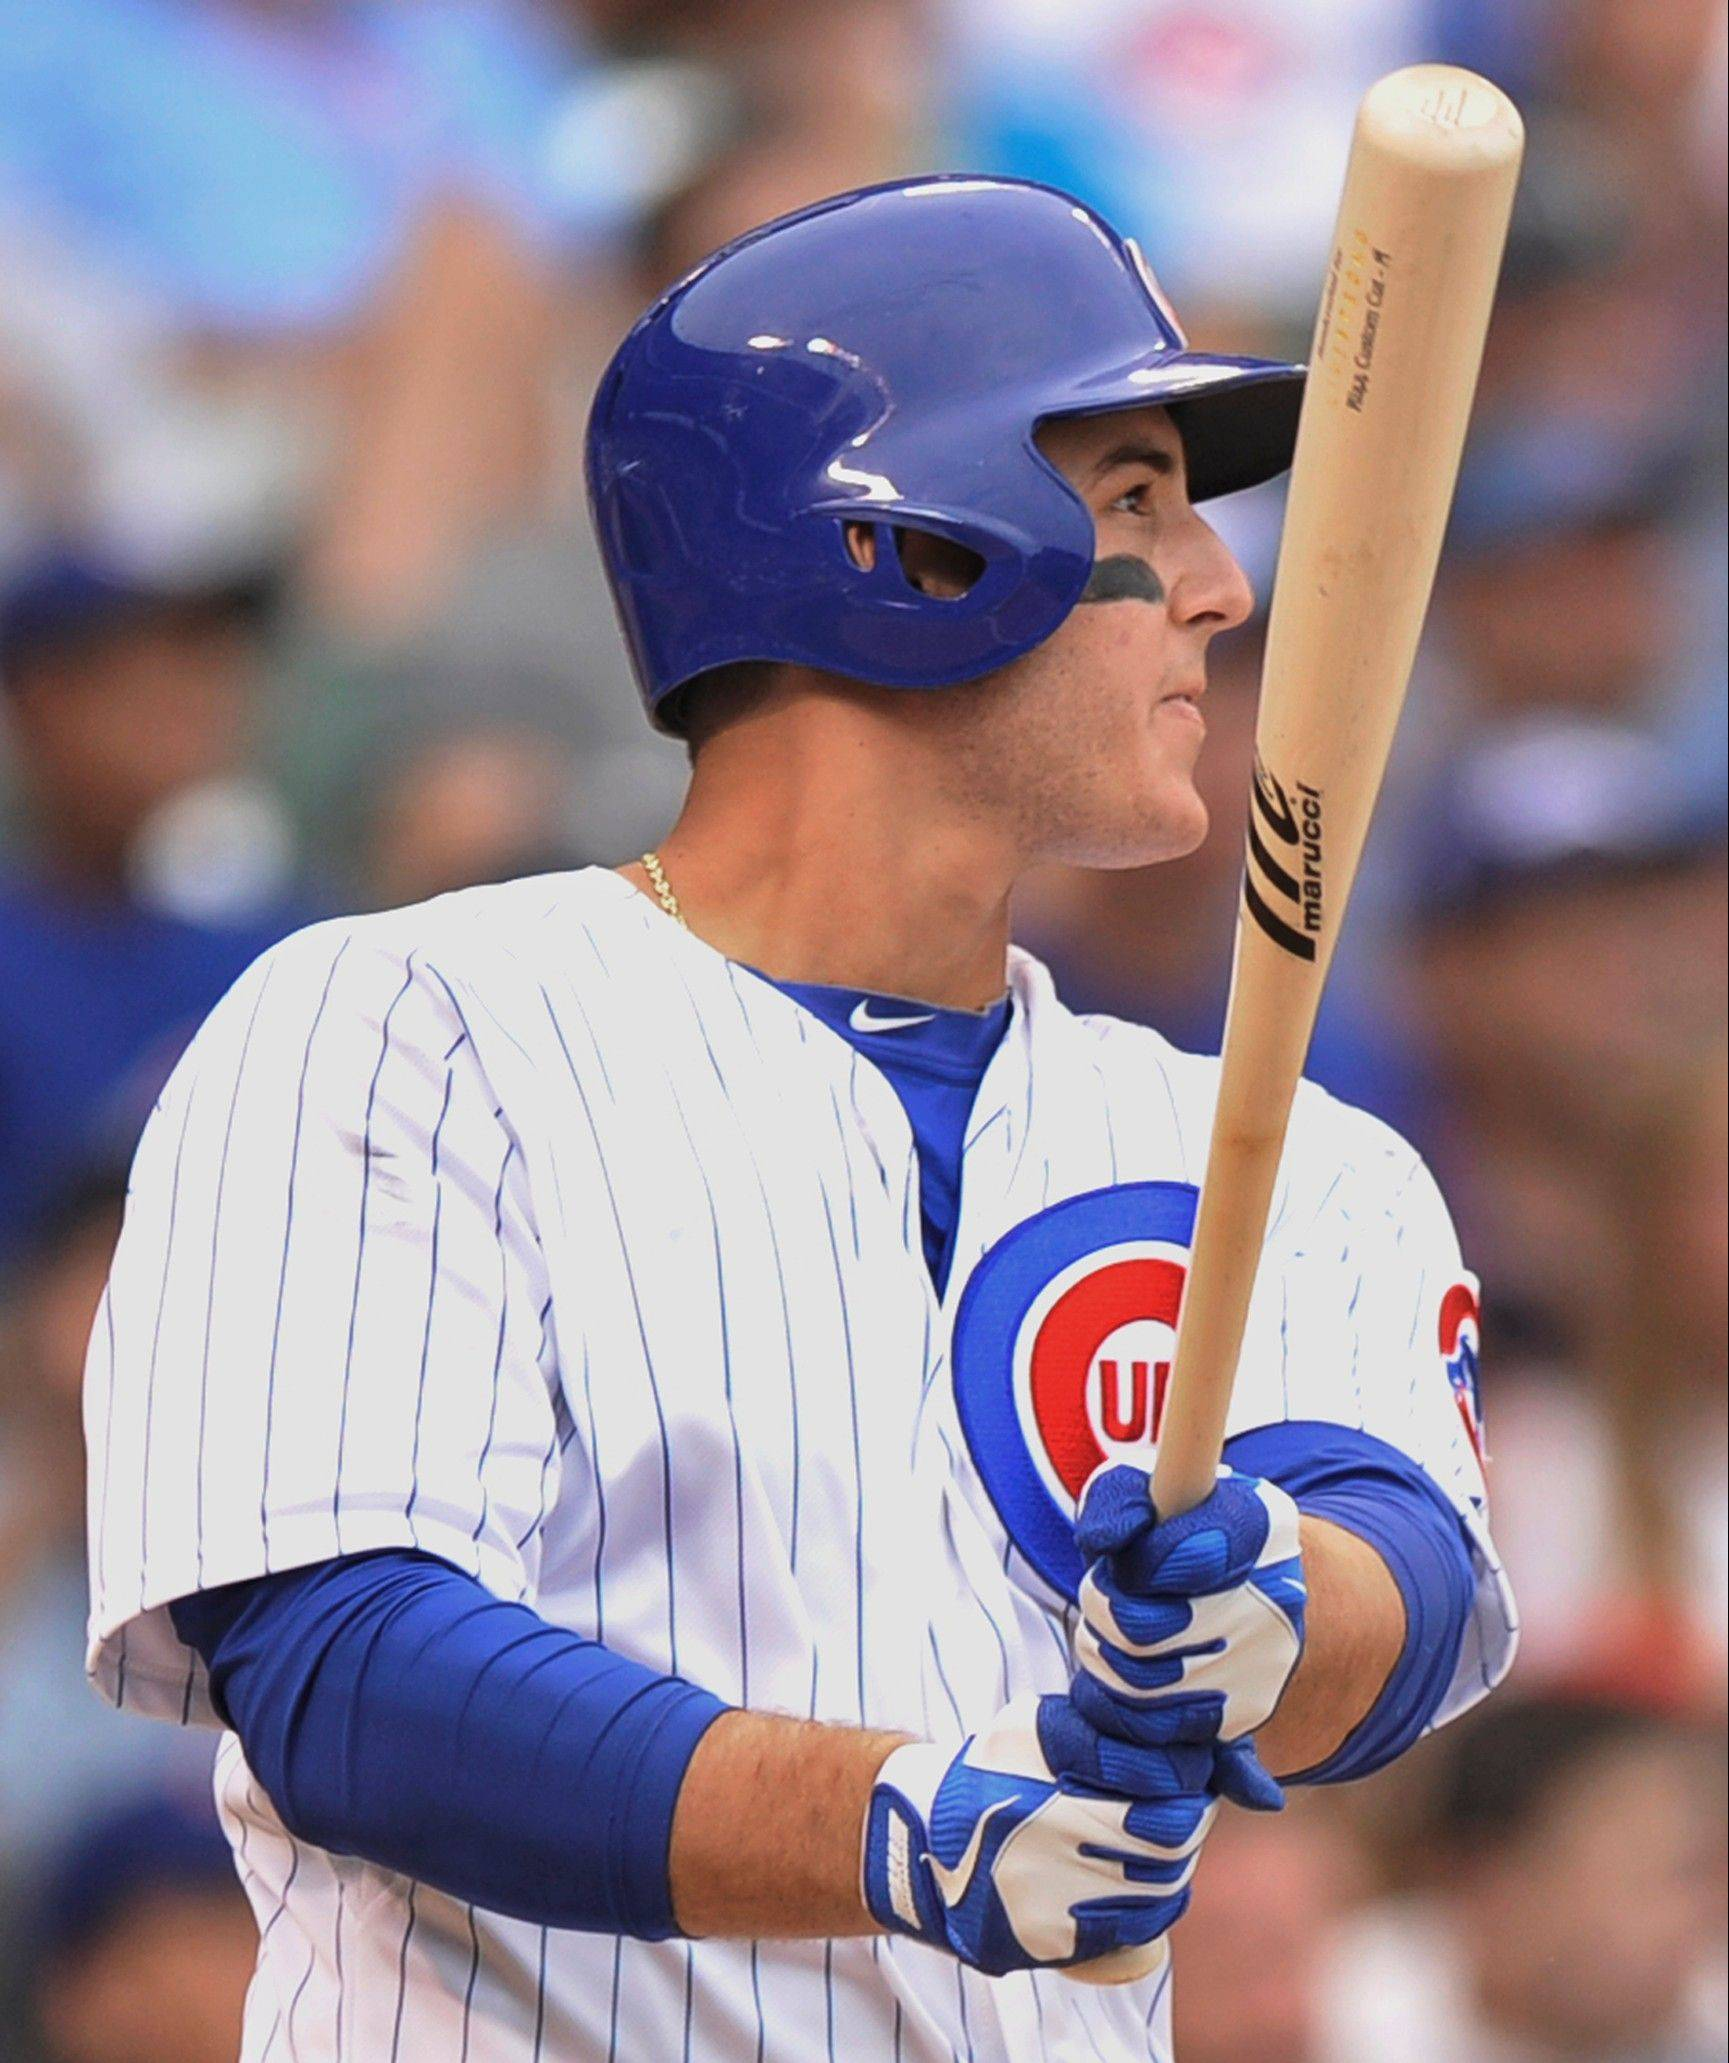 The Cubs' Anthony Rizzo admires his 2-run walkoff home run in the 10th inning Sunday at Wrigley Field.